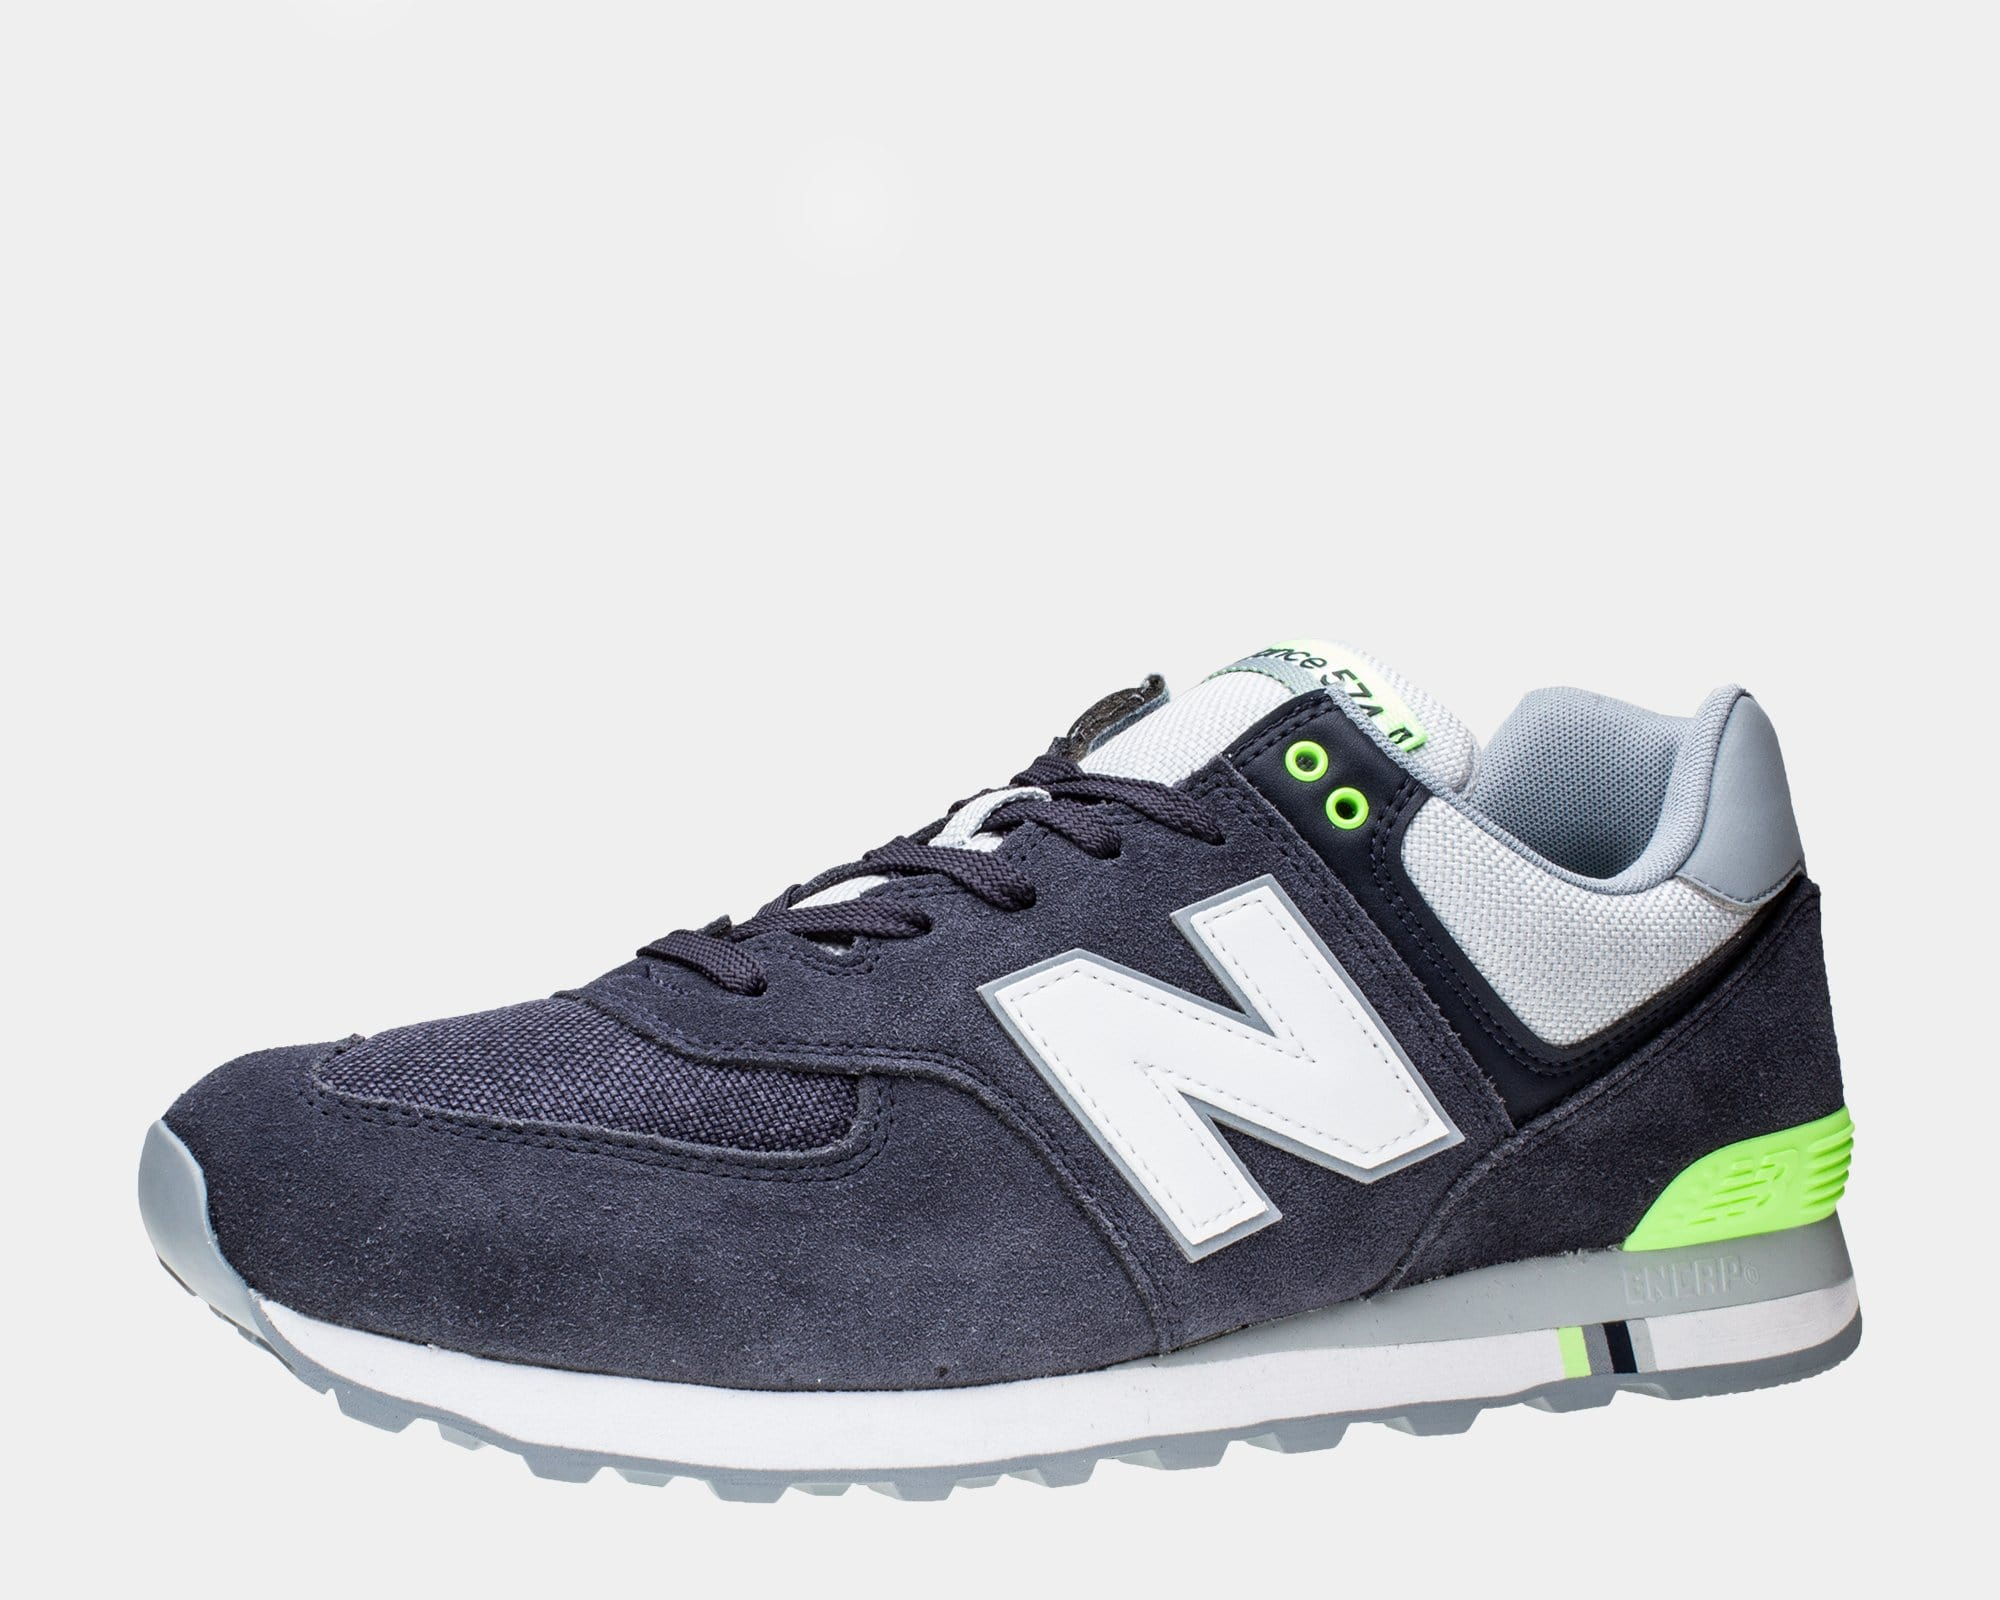 27f3a6282b989 New Balance 574 Summer Shore Sneakers - Mens Large Sizes